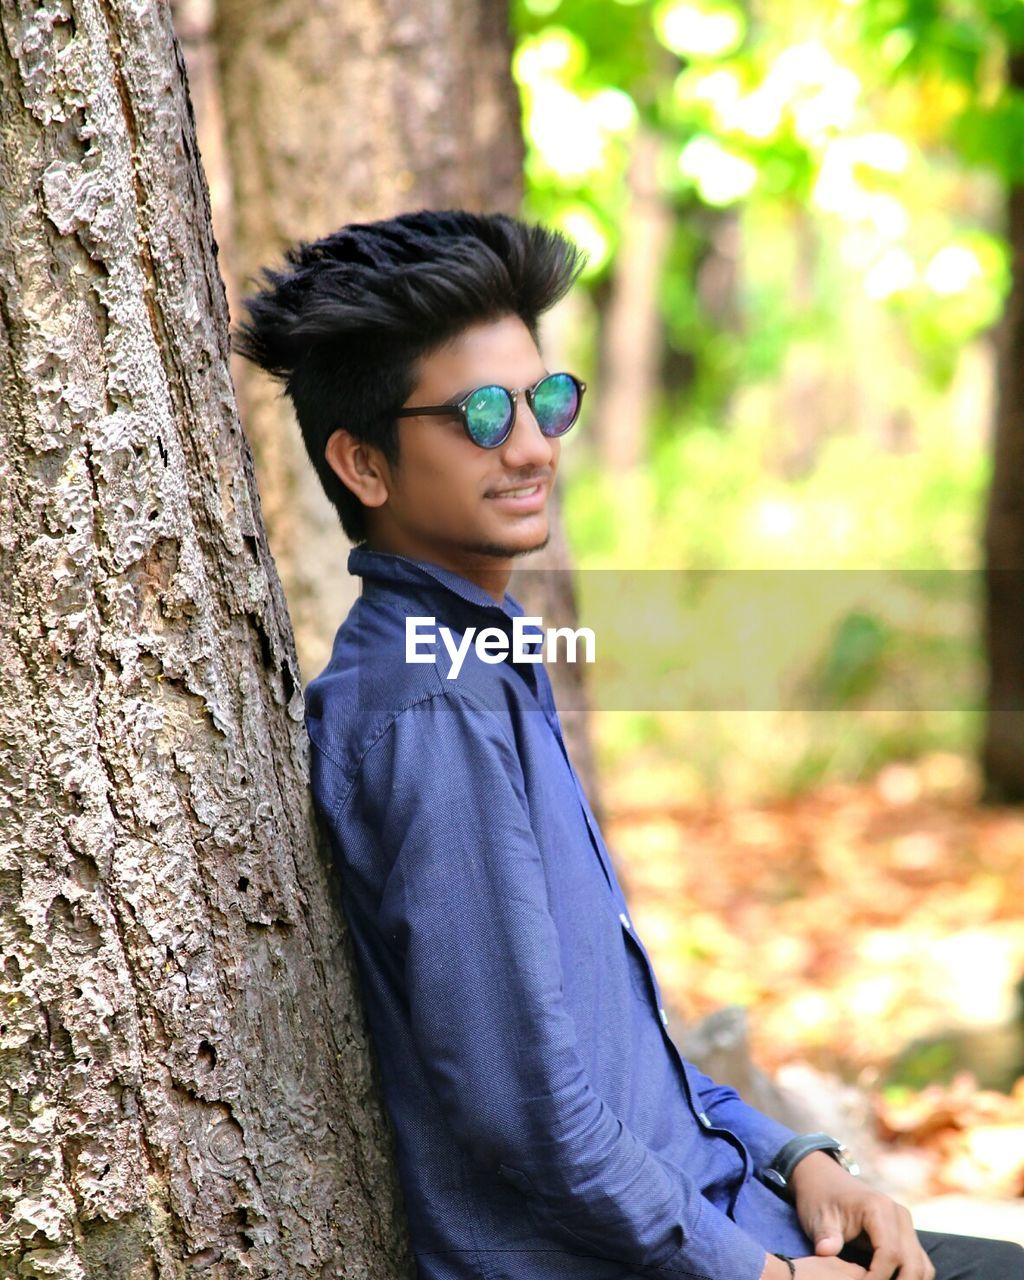 real people, sunglasses, one person, smiling, lifestyles, young adult, leisure activity, outdoors, tree, focus on foreground, eyeglasses, casual clothing, tree trunk, young men, looking at camera, glasses, day, happiness, standing, portrait, young women, posing, nature